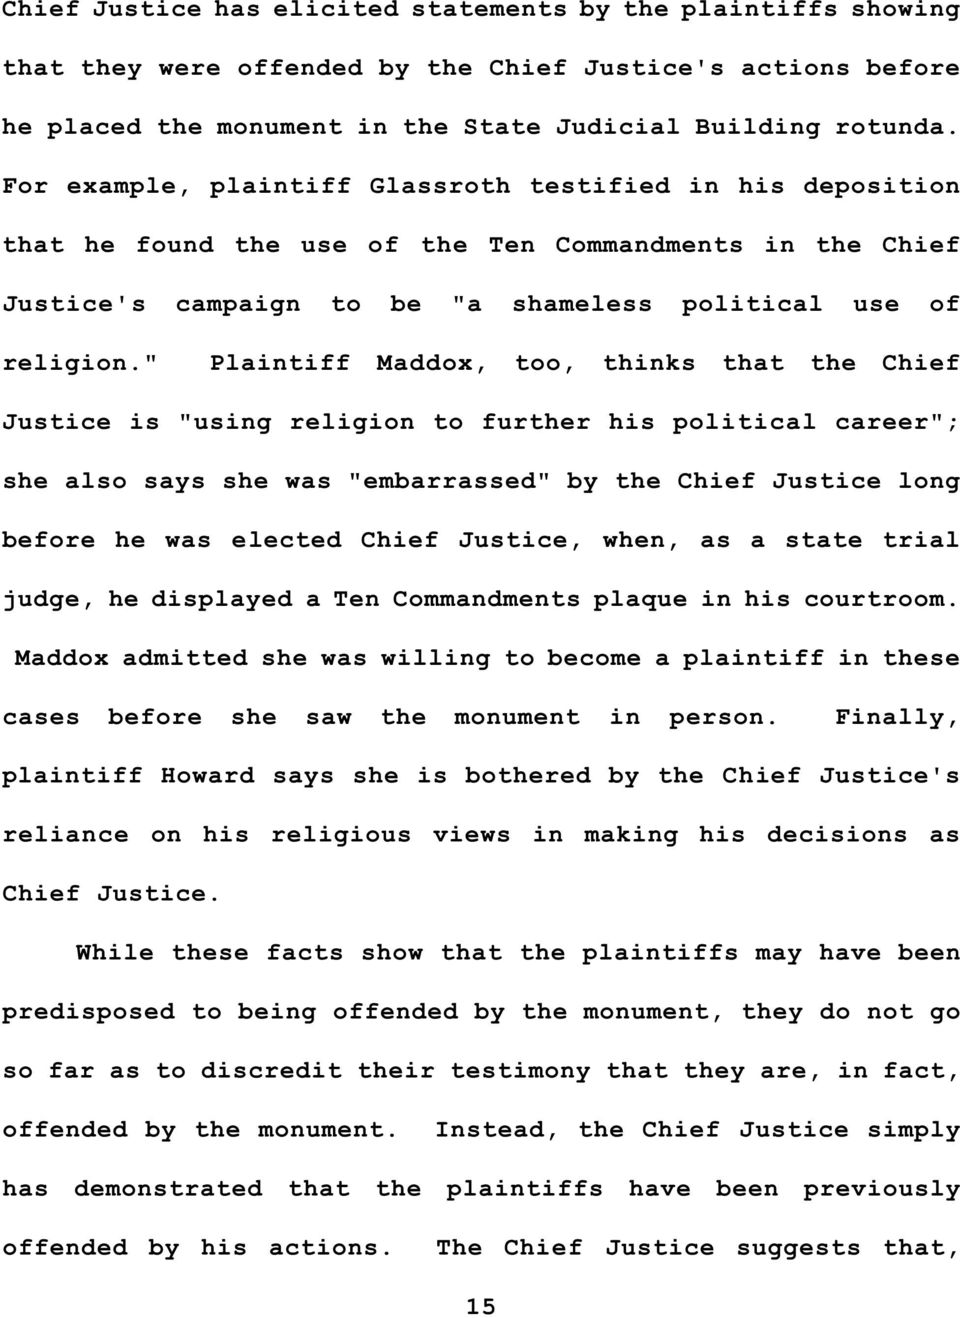 """ Plaintiff Maddox, too, thinks that the Chief Justice is ""using religion to further his political career""; she also says she was ""embarrassed"" by the Chief Justice long before he was elected Chief"